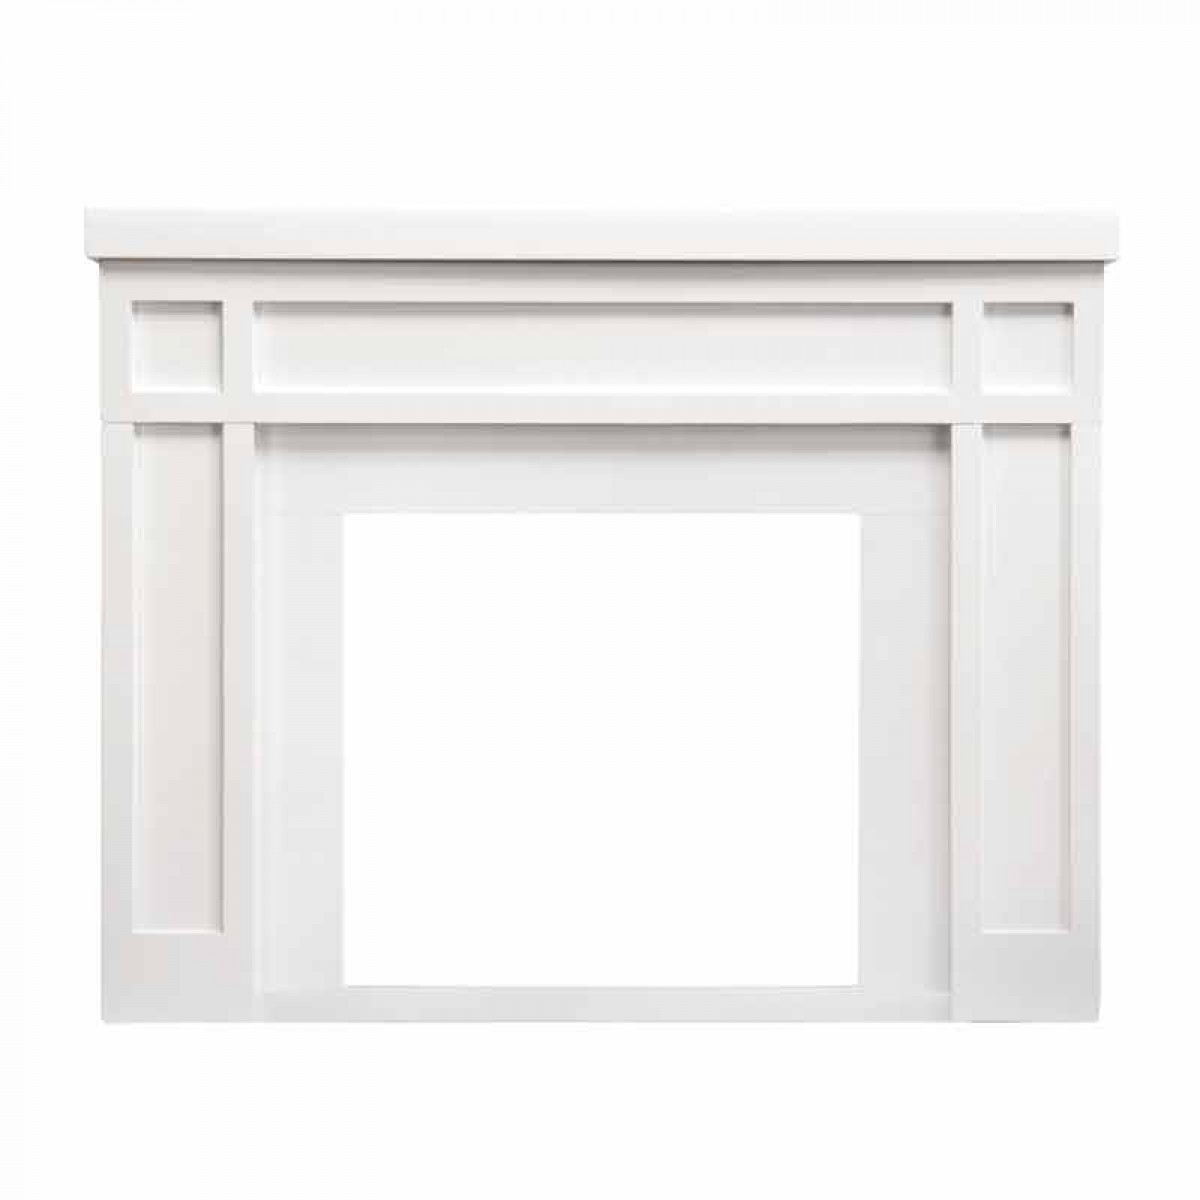 napoleon empire keenan mantels me gas fireplace mantel